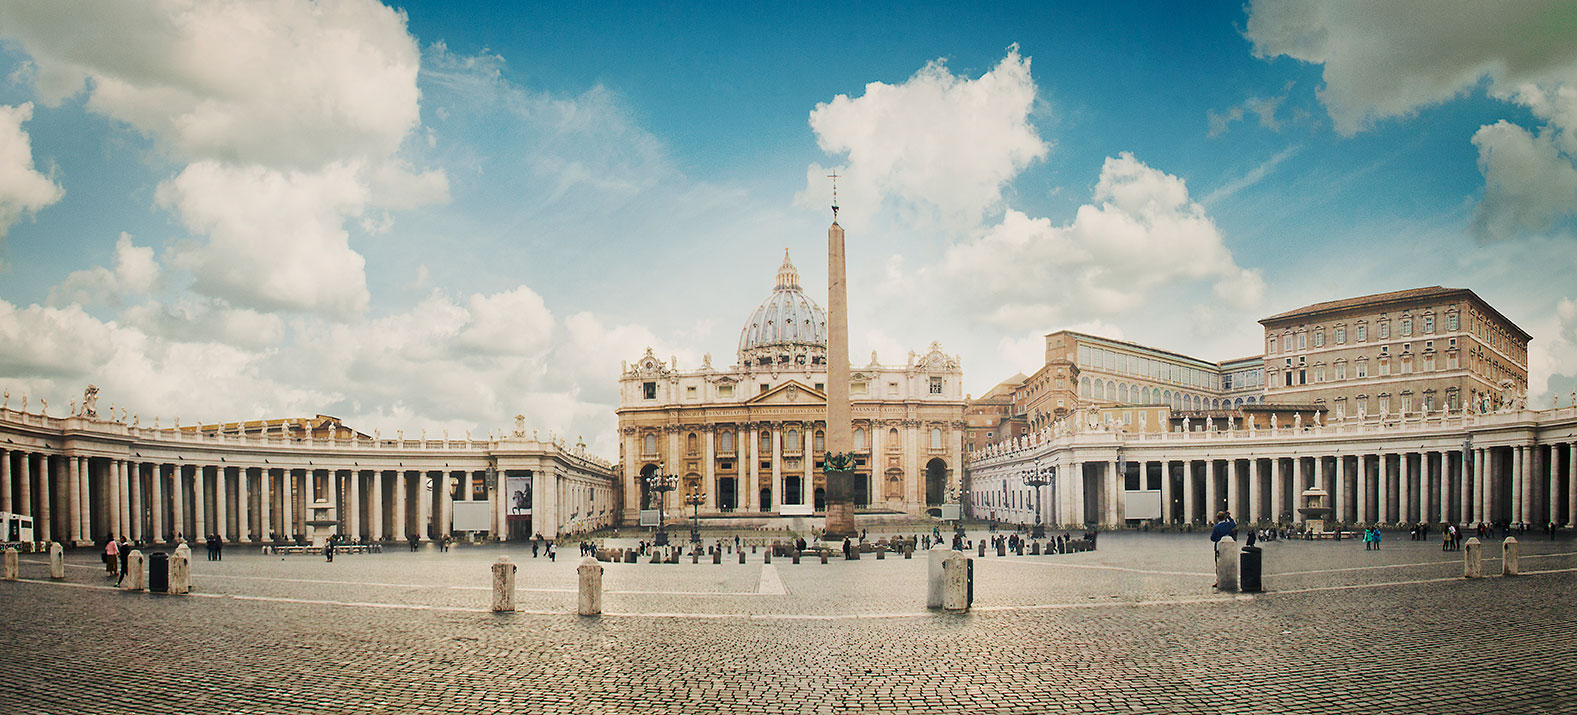 St. Peter's Square - Panoramic